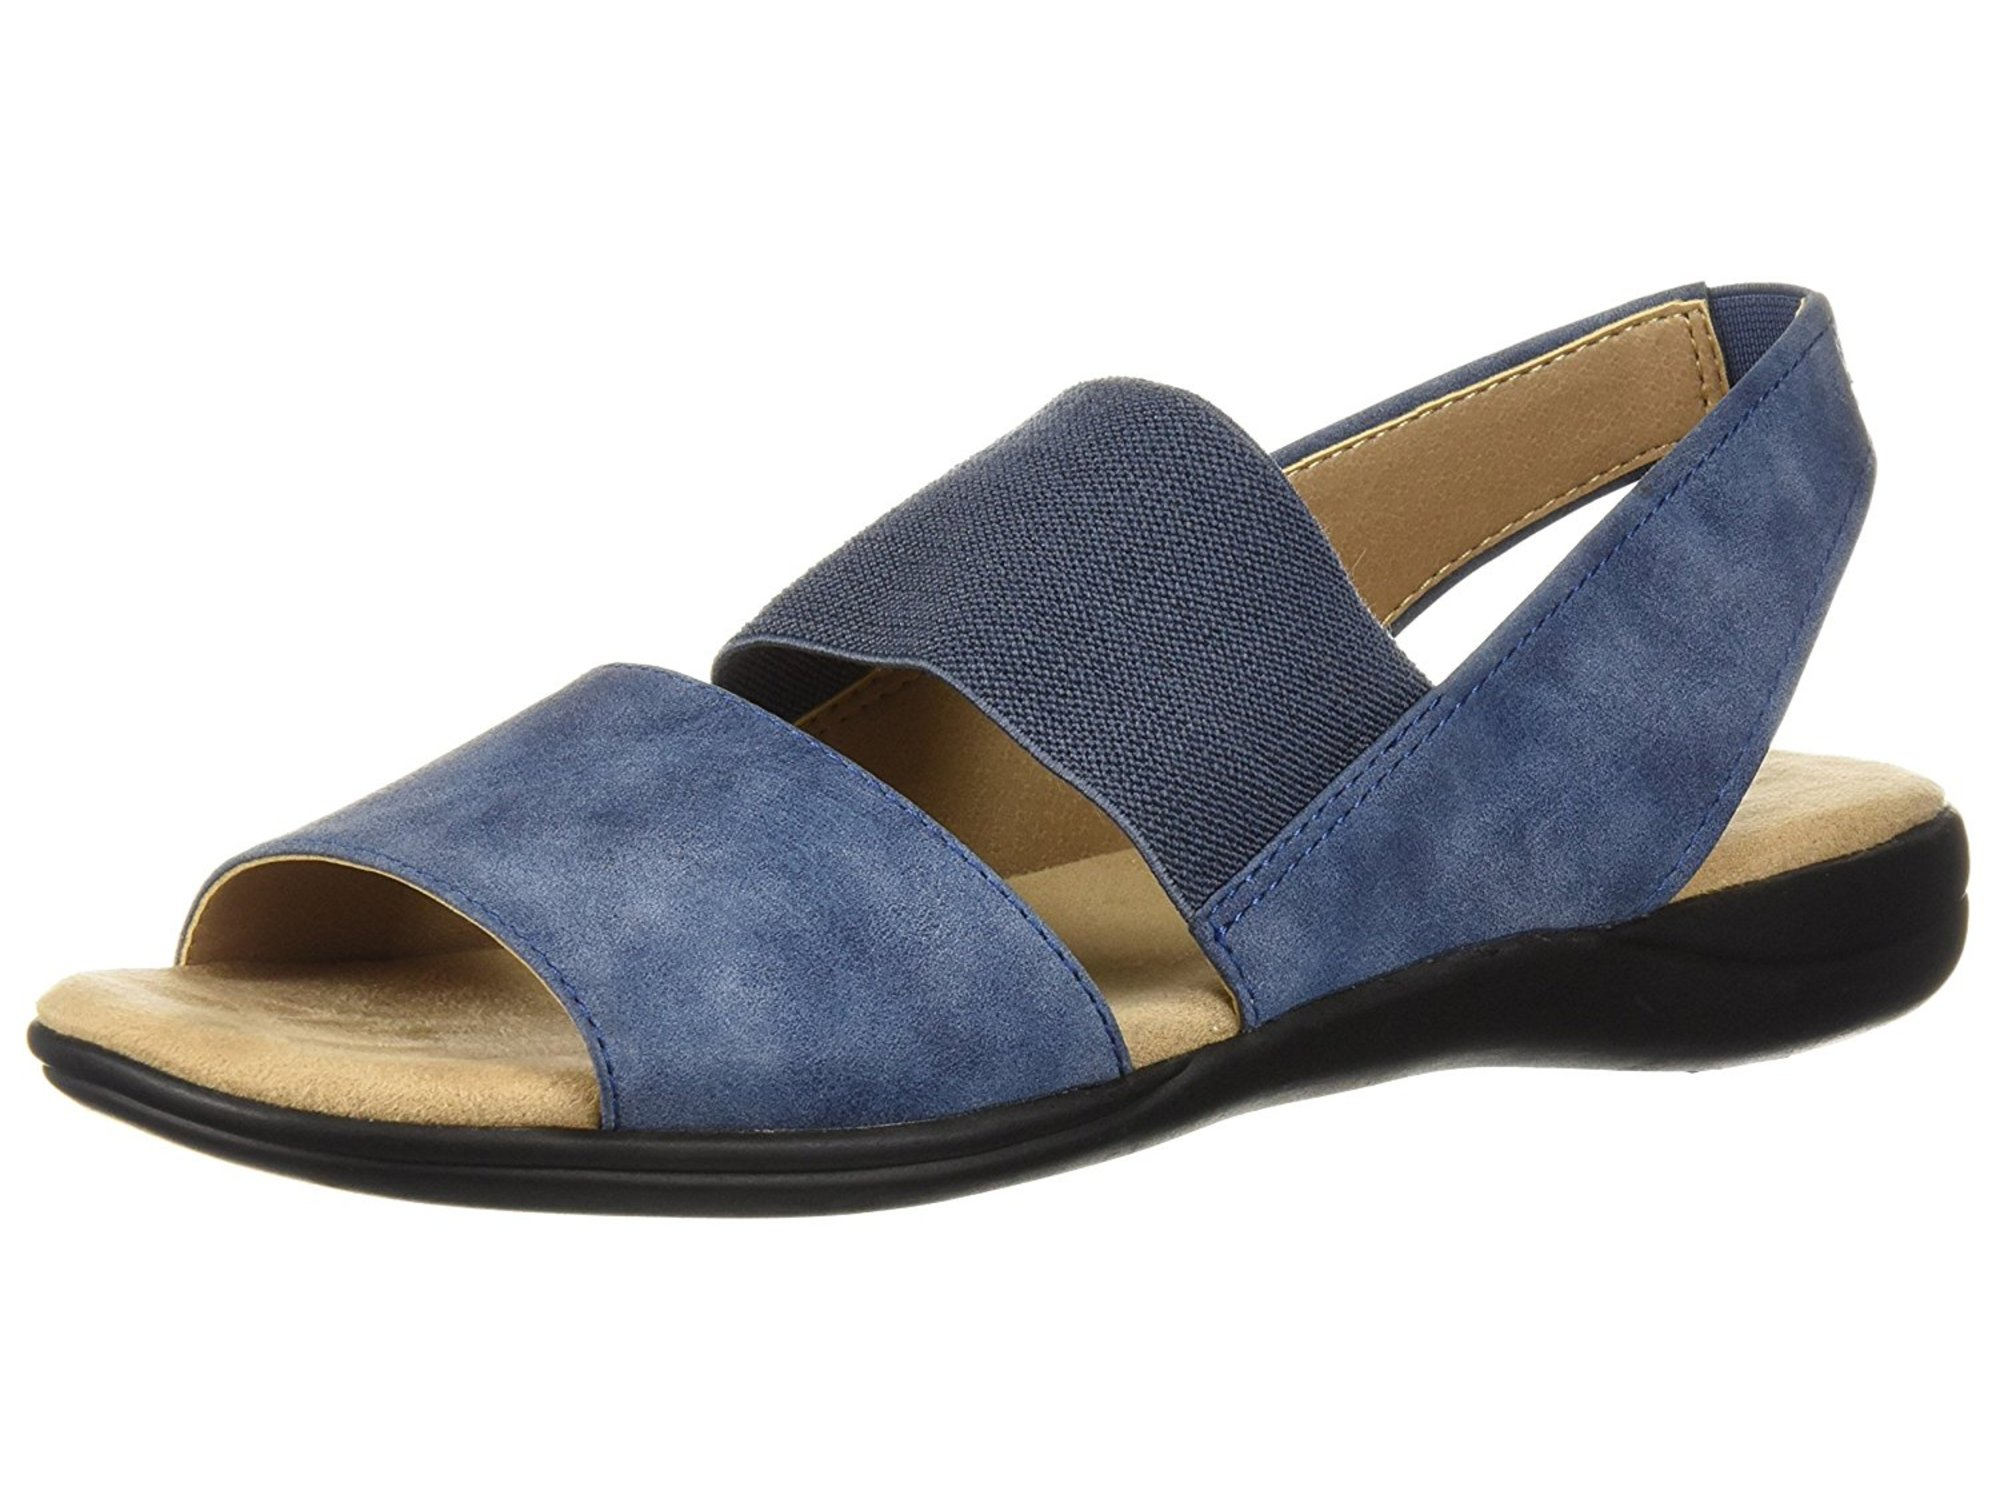 Lifestride Womens Easily Open Toe Casual Slingback Sandals by LifeStride